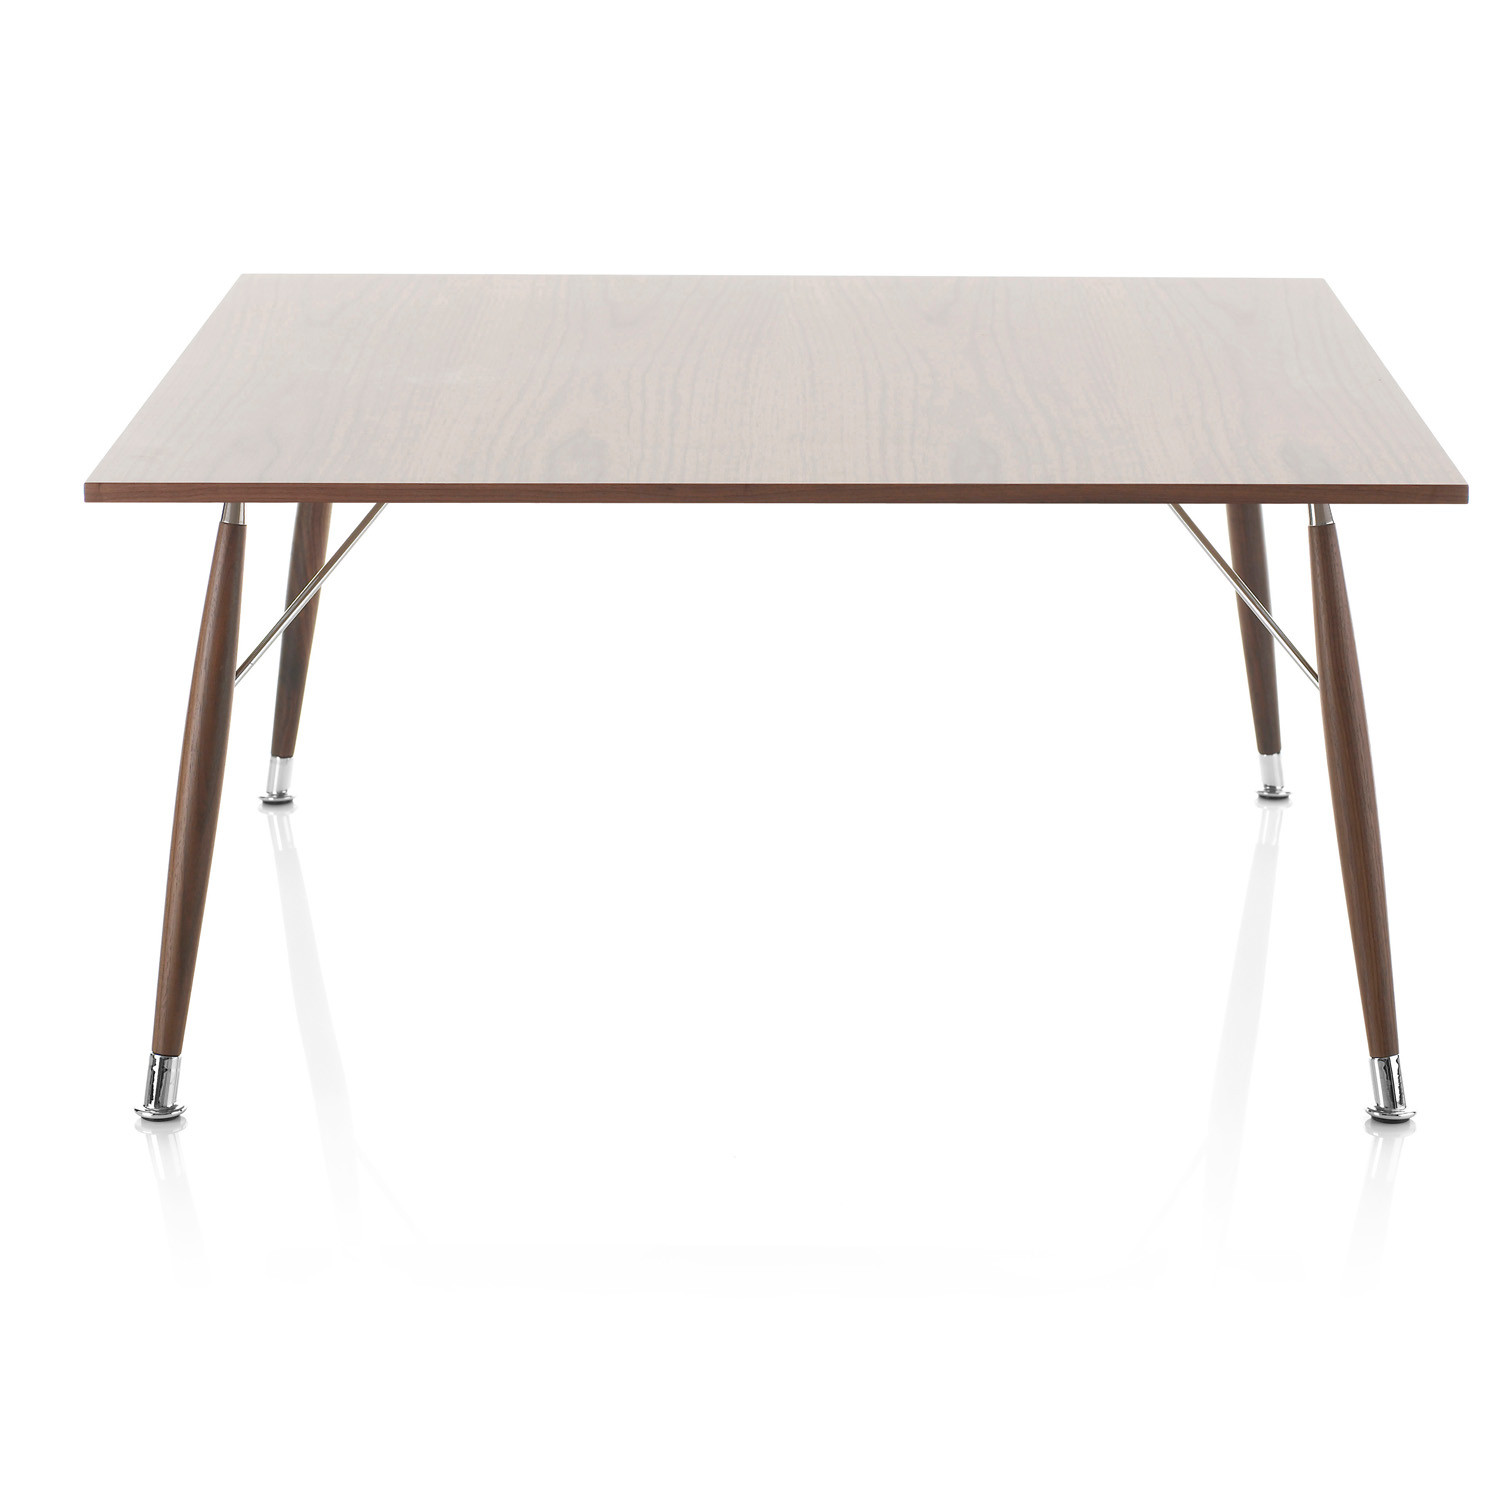 Lammhults Sahara Table